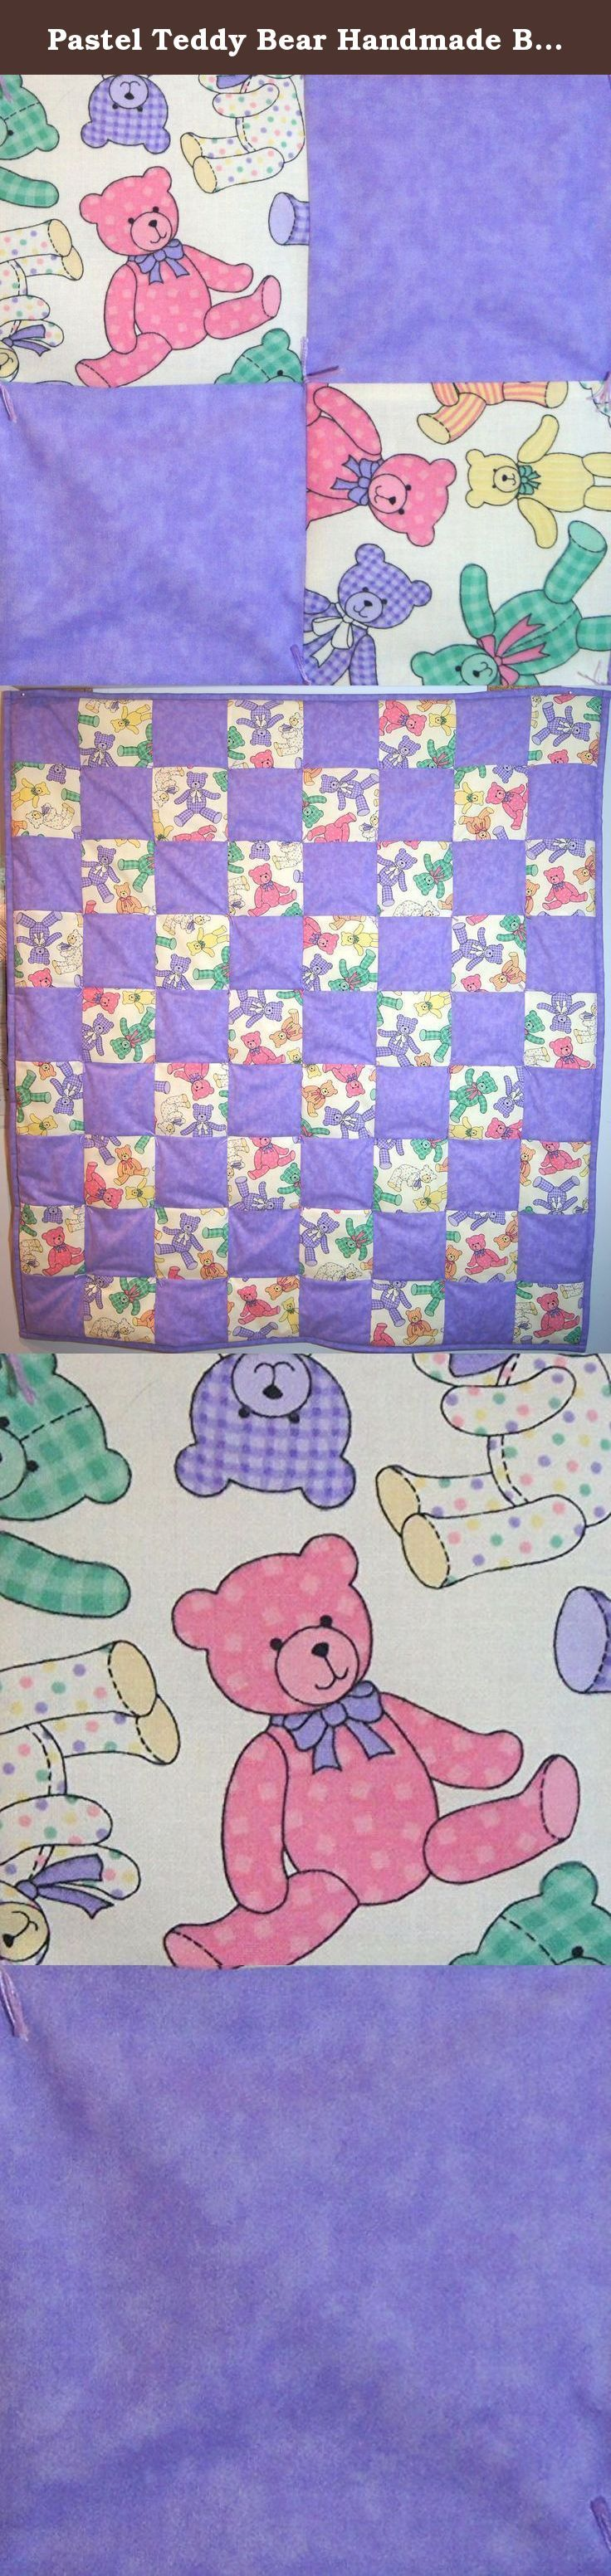 """Pastel Teddy Bear Handmade Baby Girl Quilt. This handmade baby girl quilt is made with a precious pastel teddy bear print and a matching lavender fabric. The backing is a soft white muslin, an extra loft polyester batting was used and the ties are lavender. It measures a generous size of approx. 36"""" x 40"""" inches. It comes pre-washed, super soft and ready for snuggling. Care includes machine wash on delicate, tumble dry low heat."""